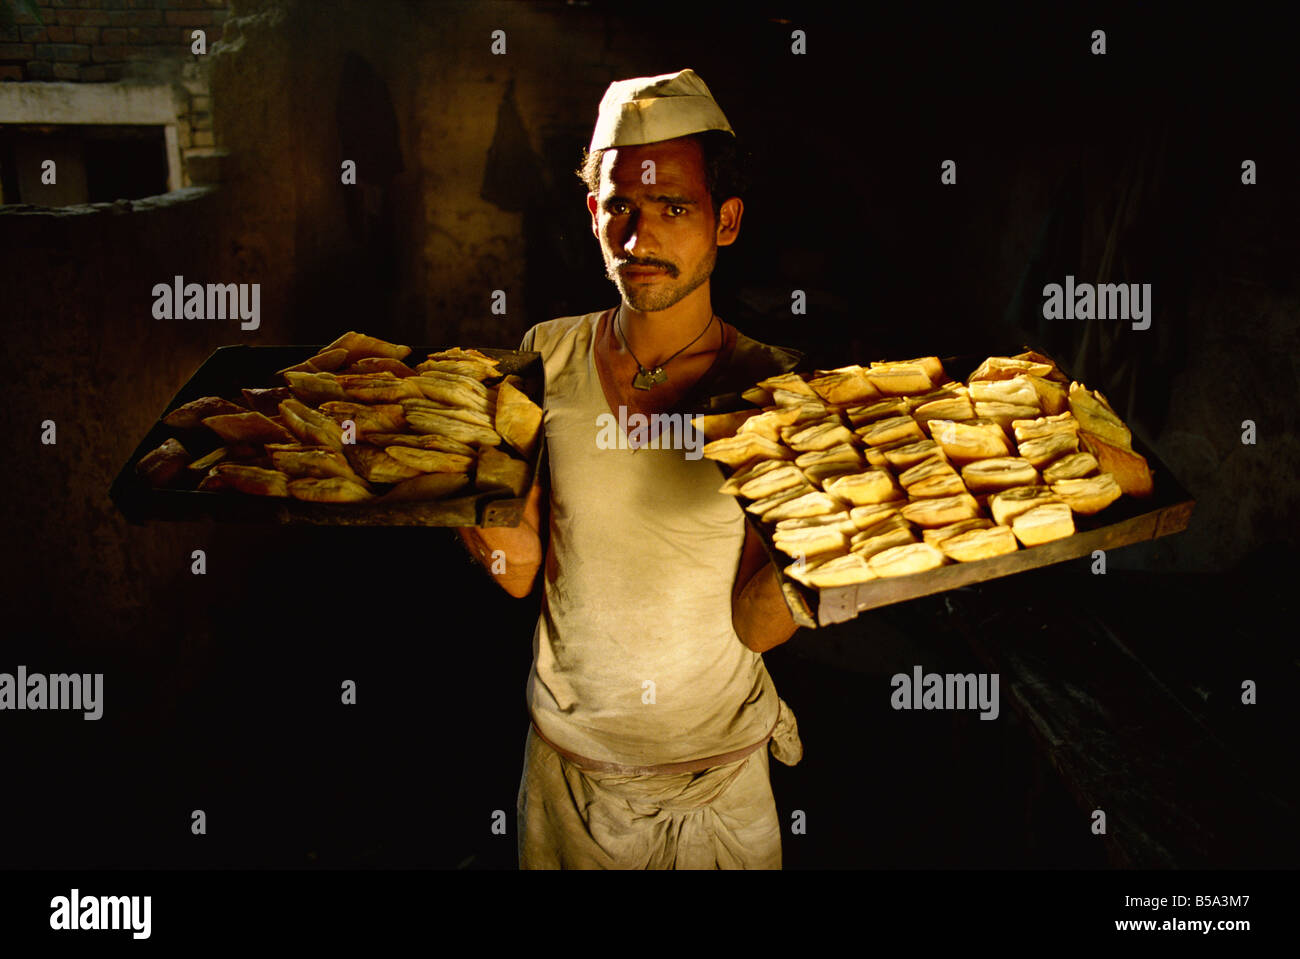 Bakery in North India India Asia - Stock Image